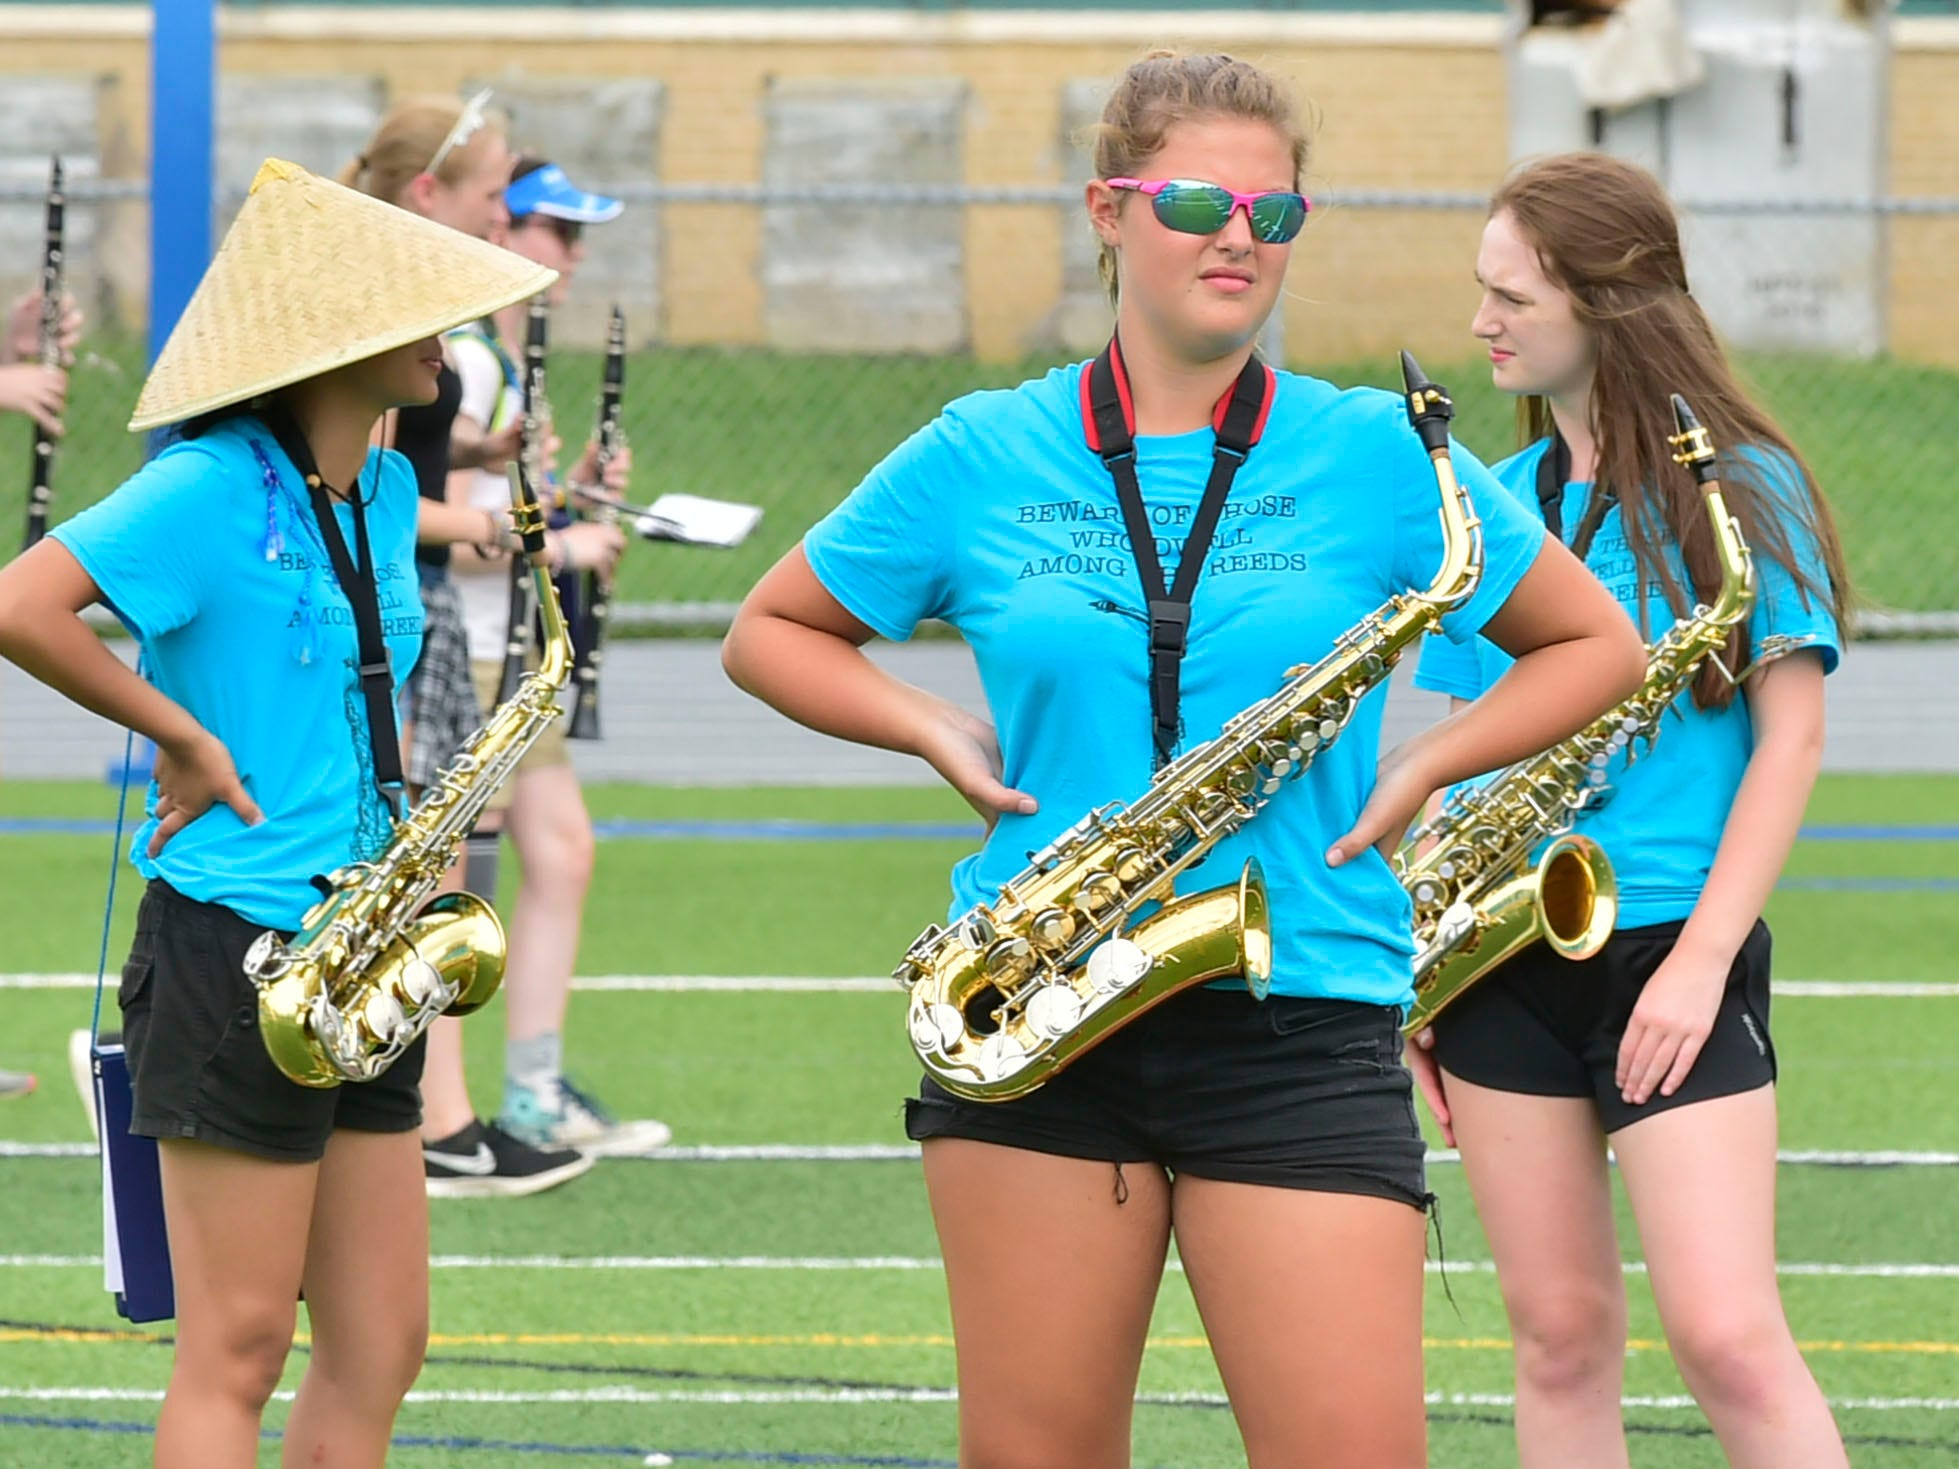 Students drill during the last day of  Chambersburg Marching Band camp on Friday, August 3, 2018 at Trojan Stadium. An exhibition is planned for Friday at 6:45 p.m. if weather permits.